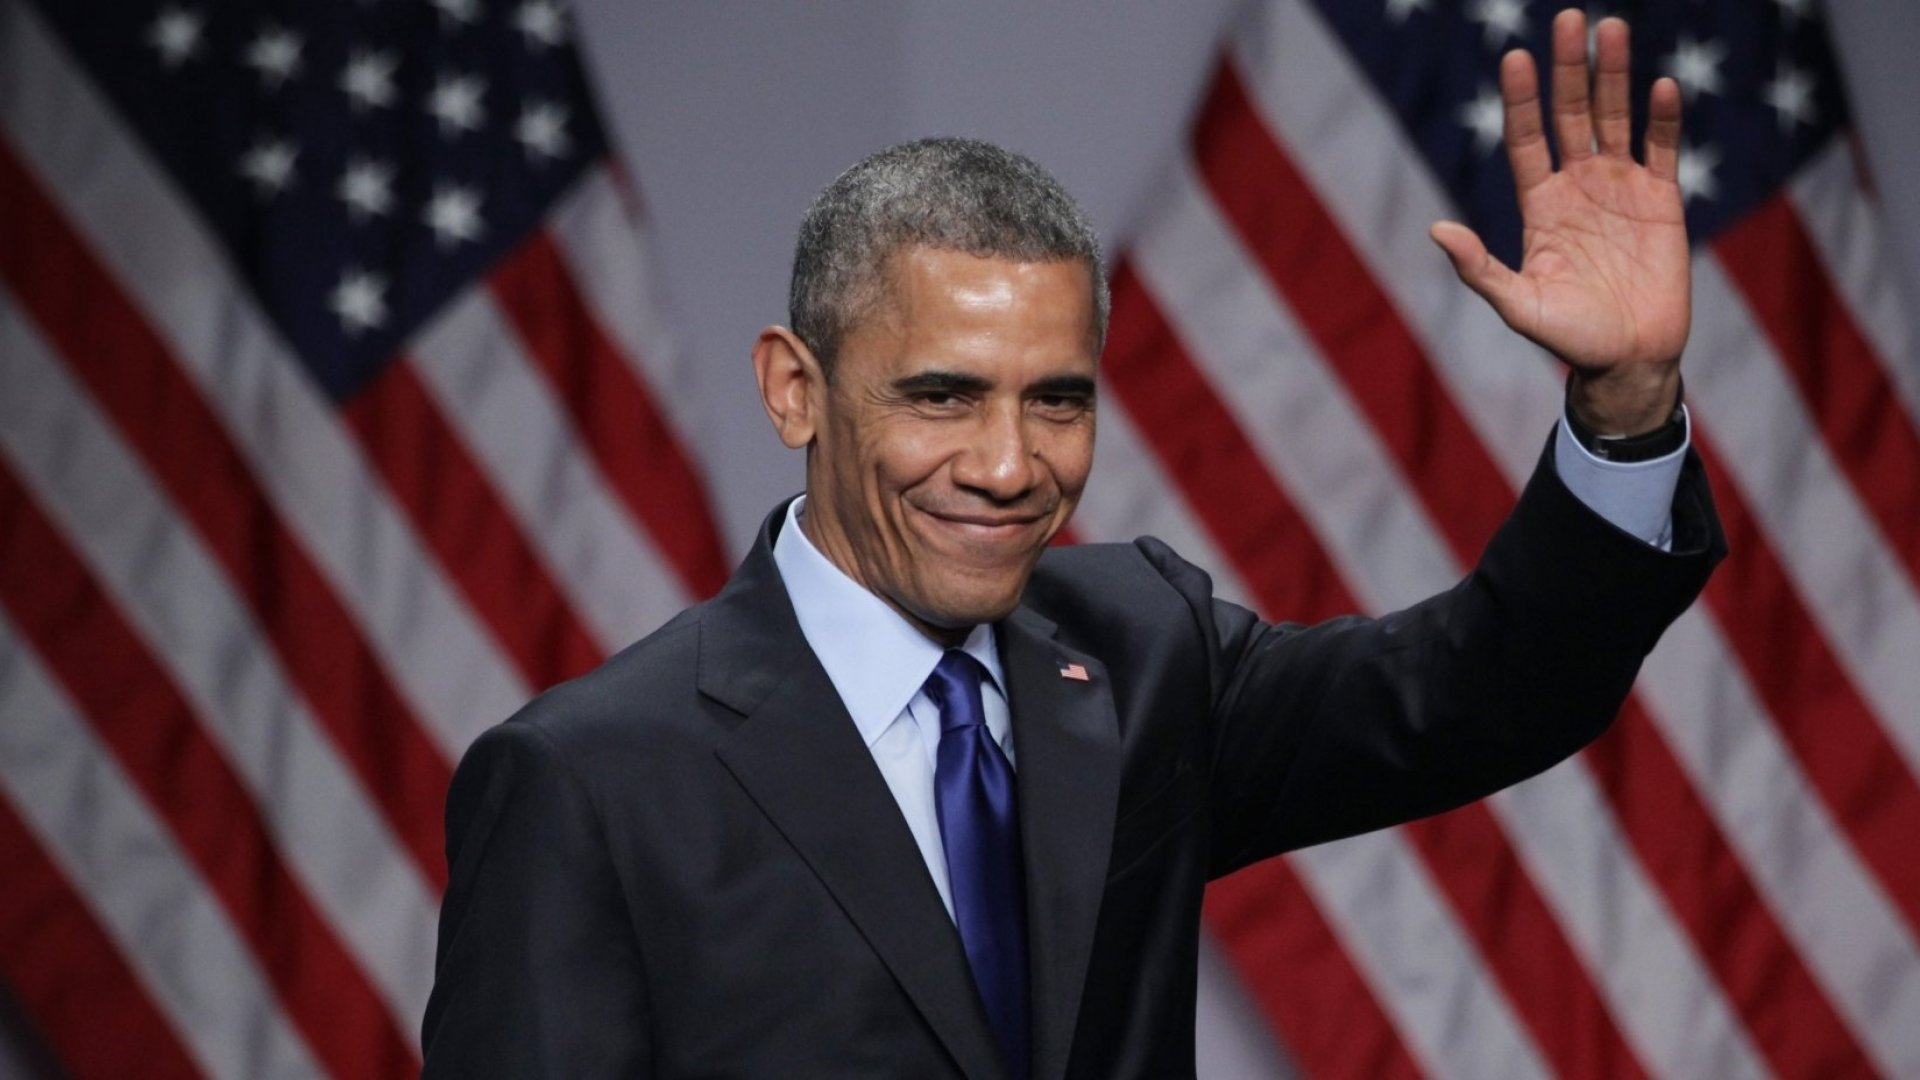 Why Obama Will Be the First Sitting President to Visit SXSW